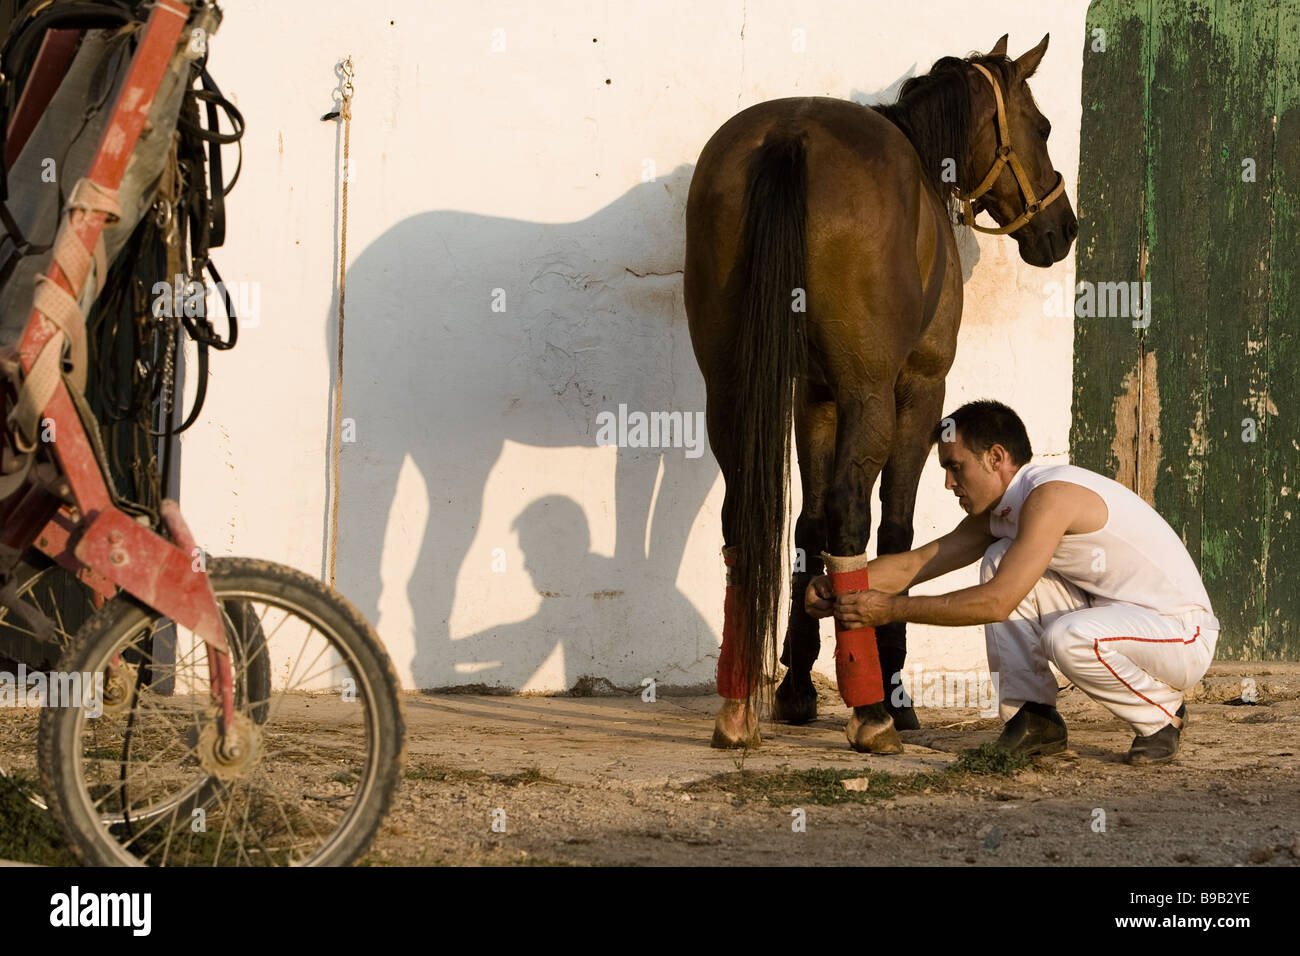 man bike and horse at stables - Stock Image